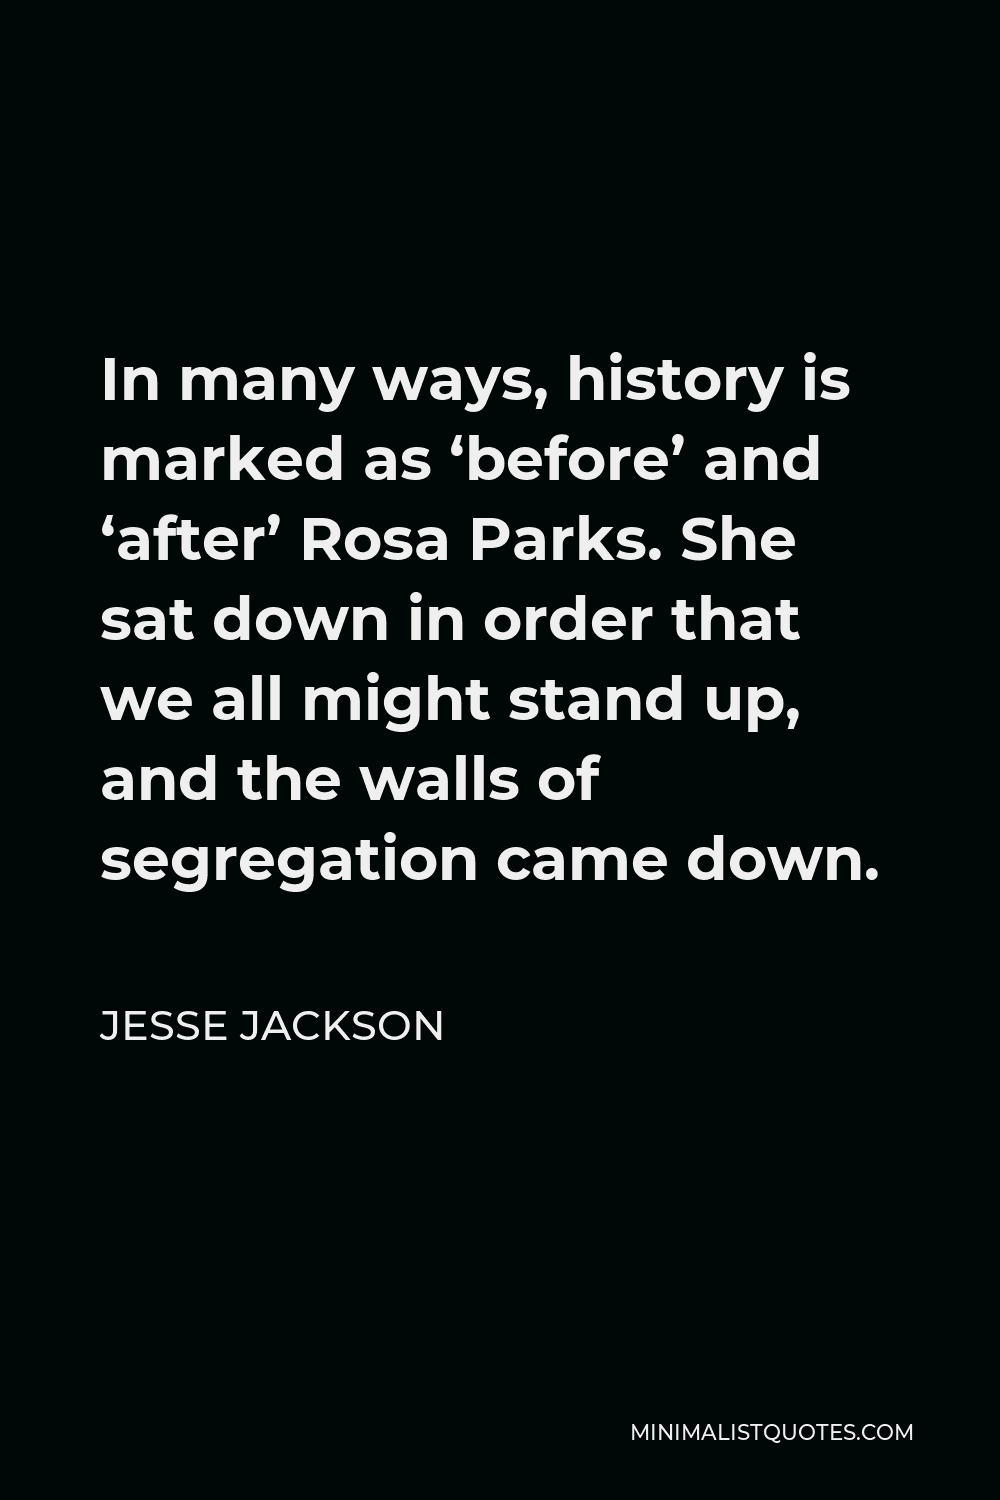 Jesse Jackson Quote - In many ways, history is marked as 'before' and 'after' Rosa Parks. She sat down in order that we all might stand up, and the walls of segregation came down.